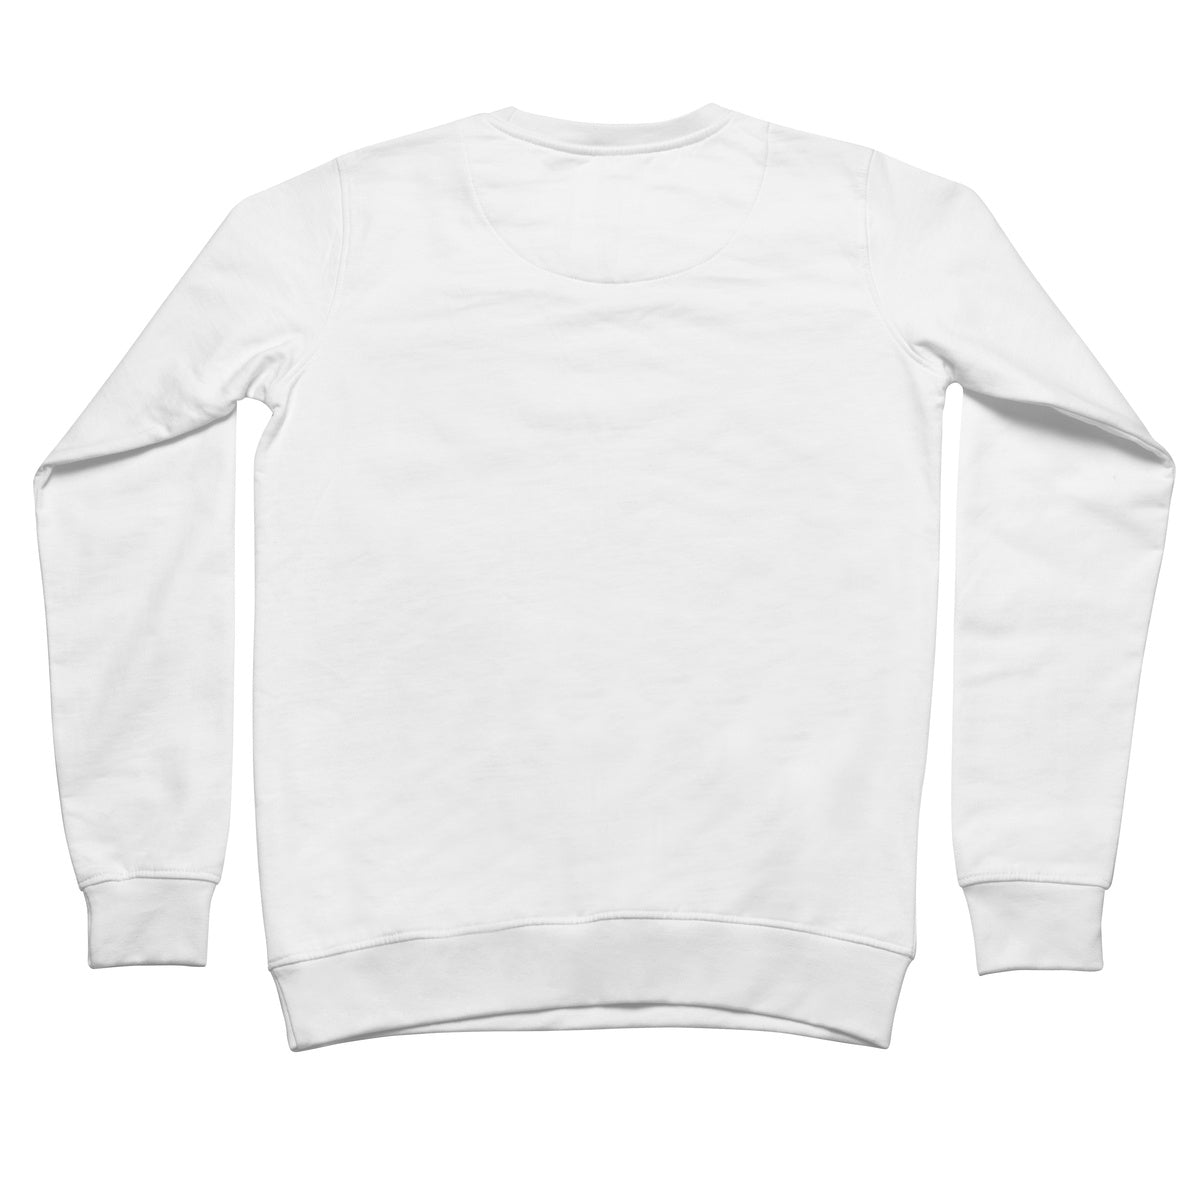 Rape? Women's Retail Sweatshirt